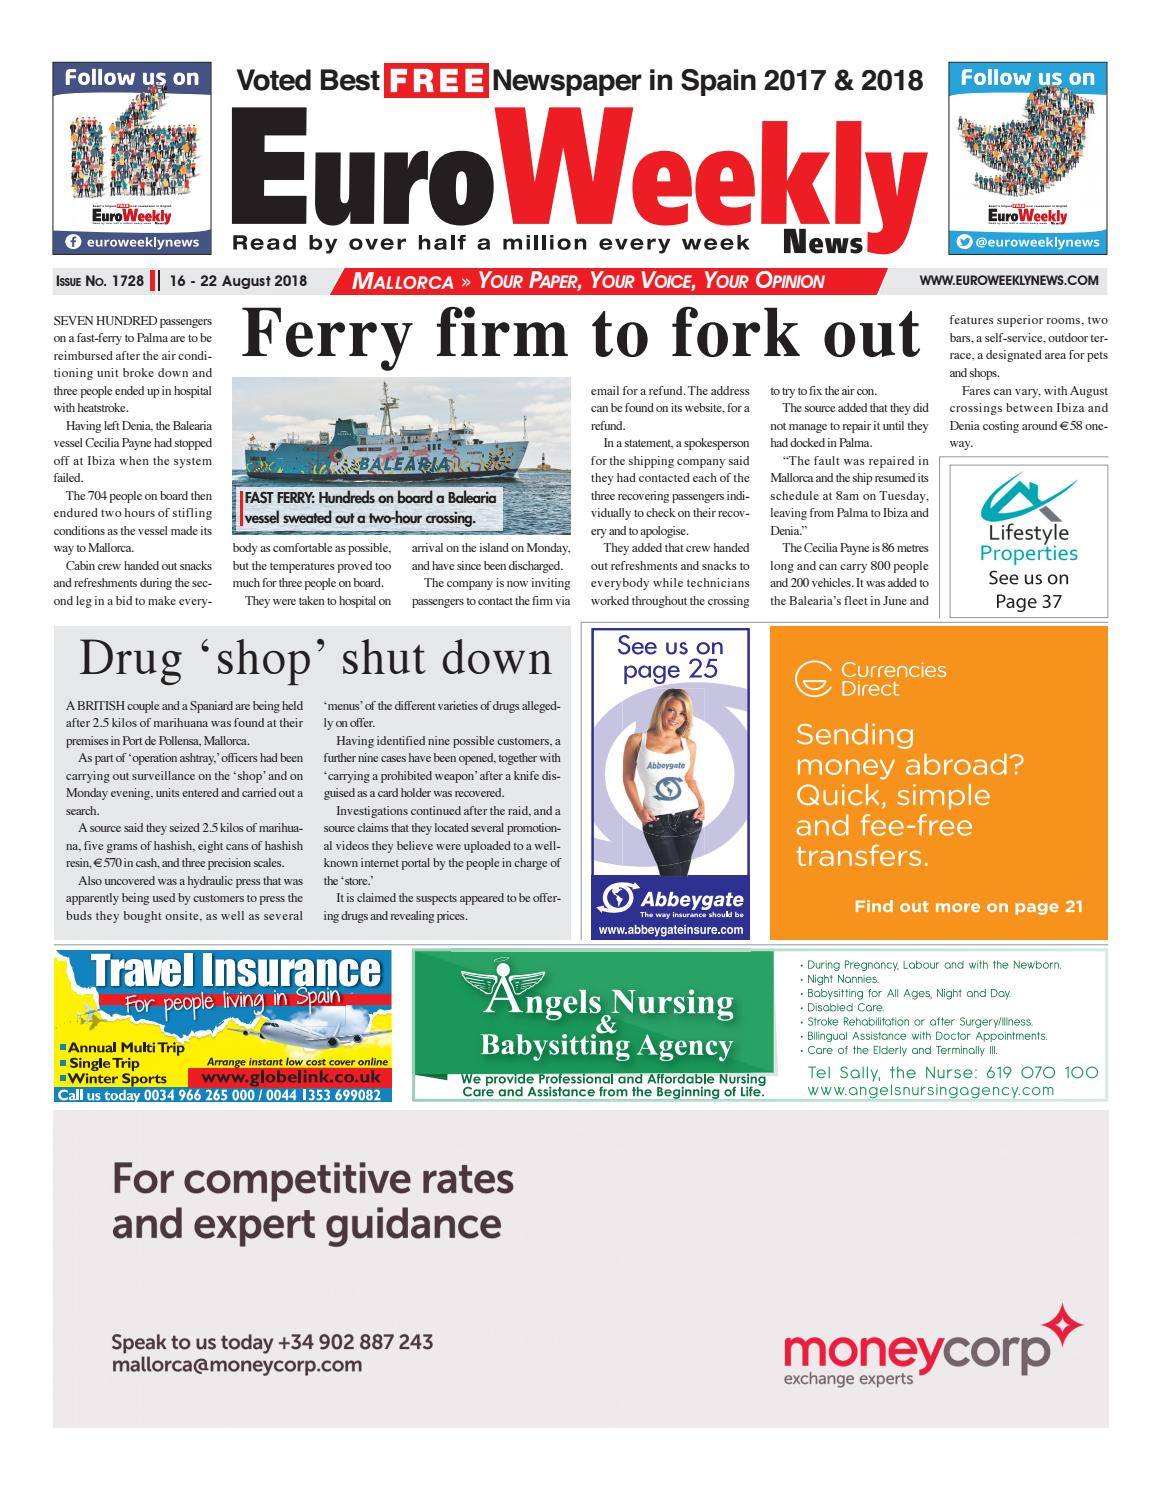 Euro Weekly News Mallorca 16 22 August 2018 Issue 1728 By Taurus 2 Speed Fan Helpvolvowiringjpg Media Sa Issuu